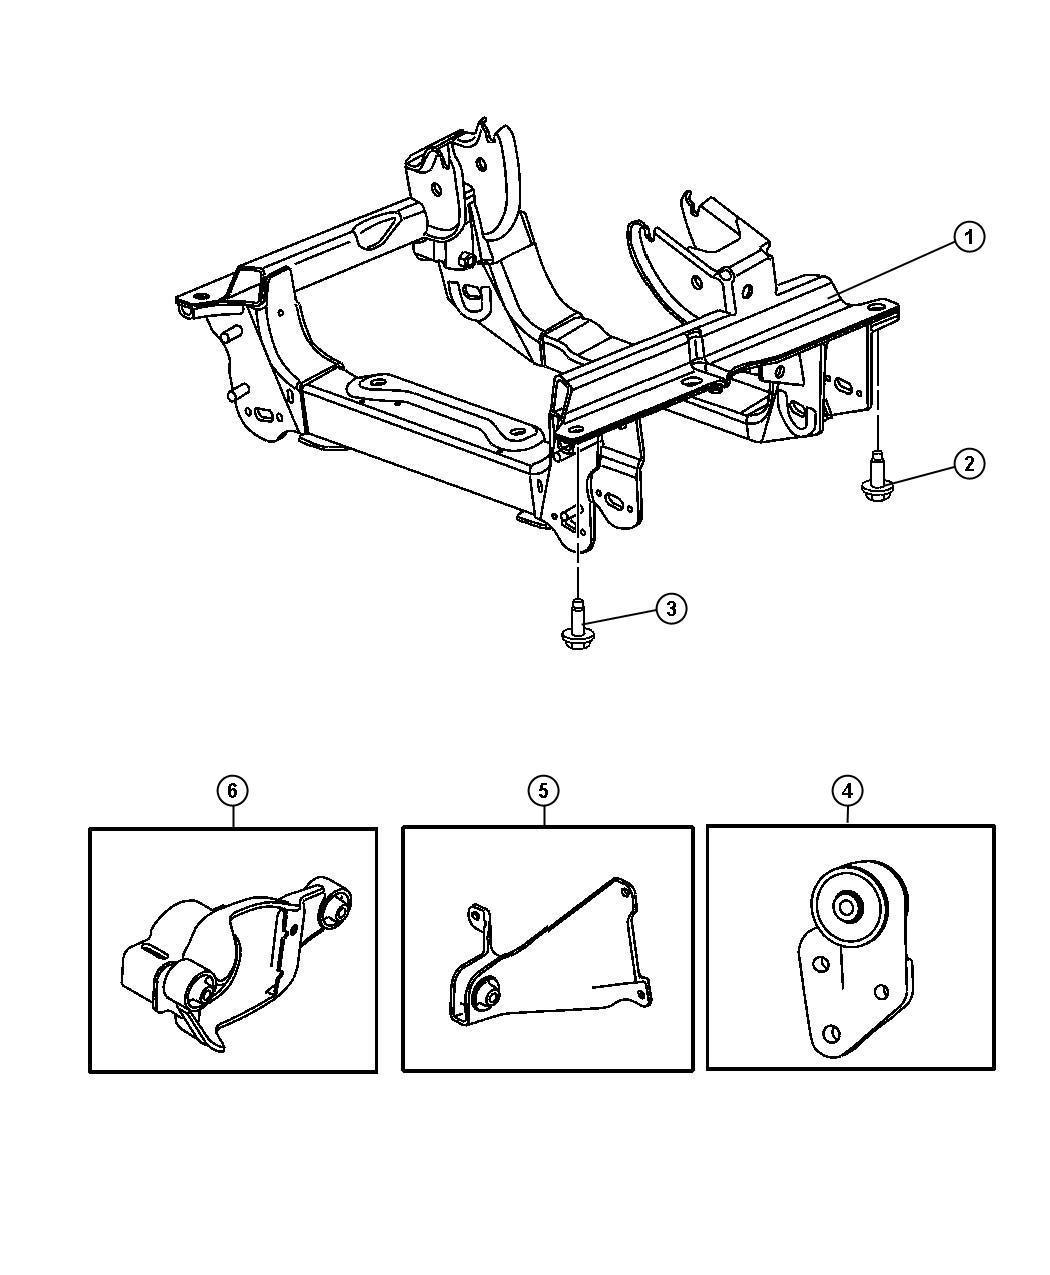 Jeep Liberty Bolt Used For Screw And Washer